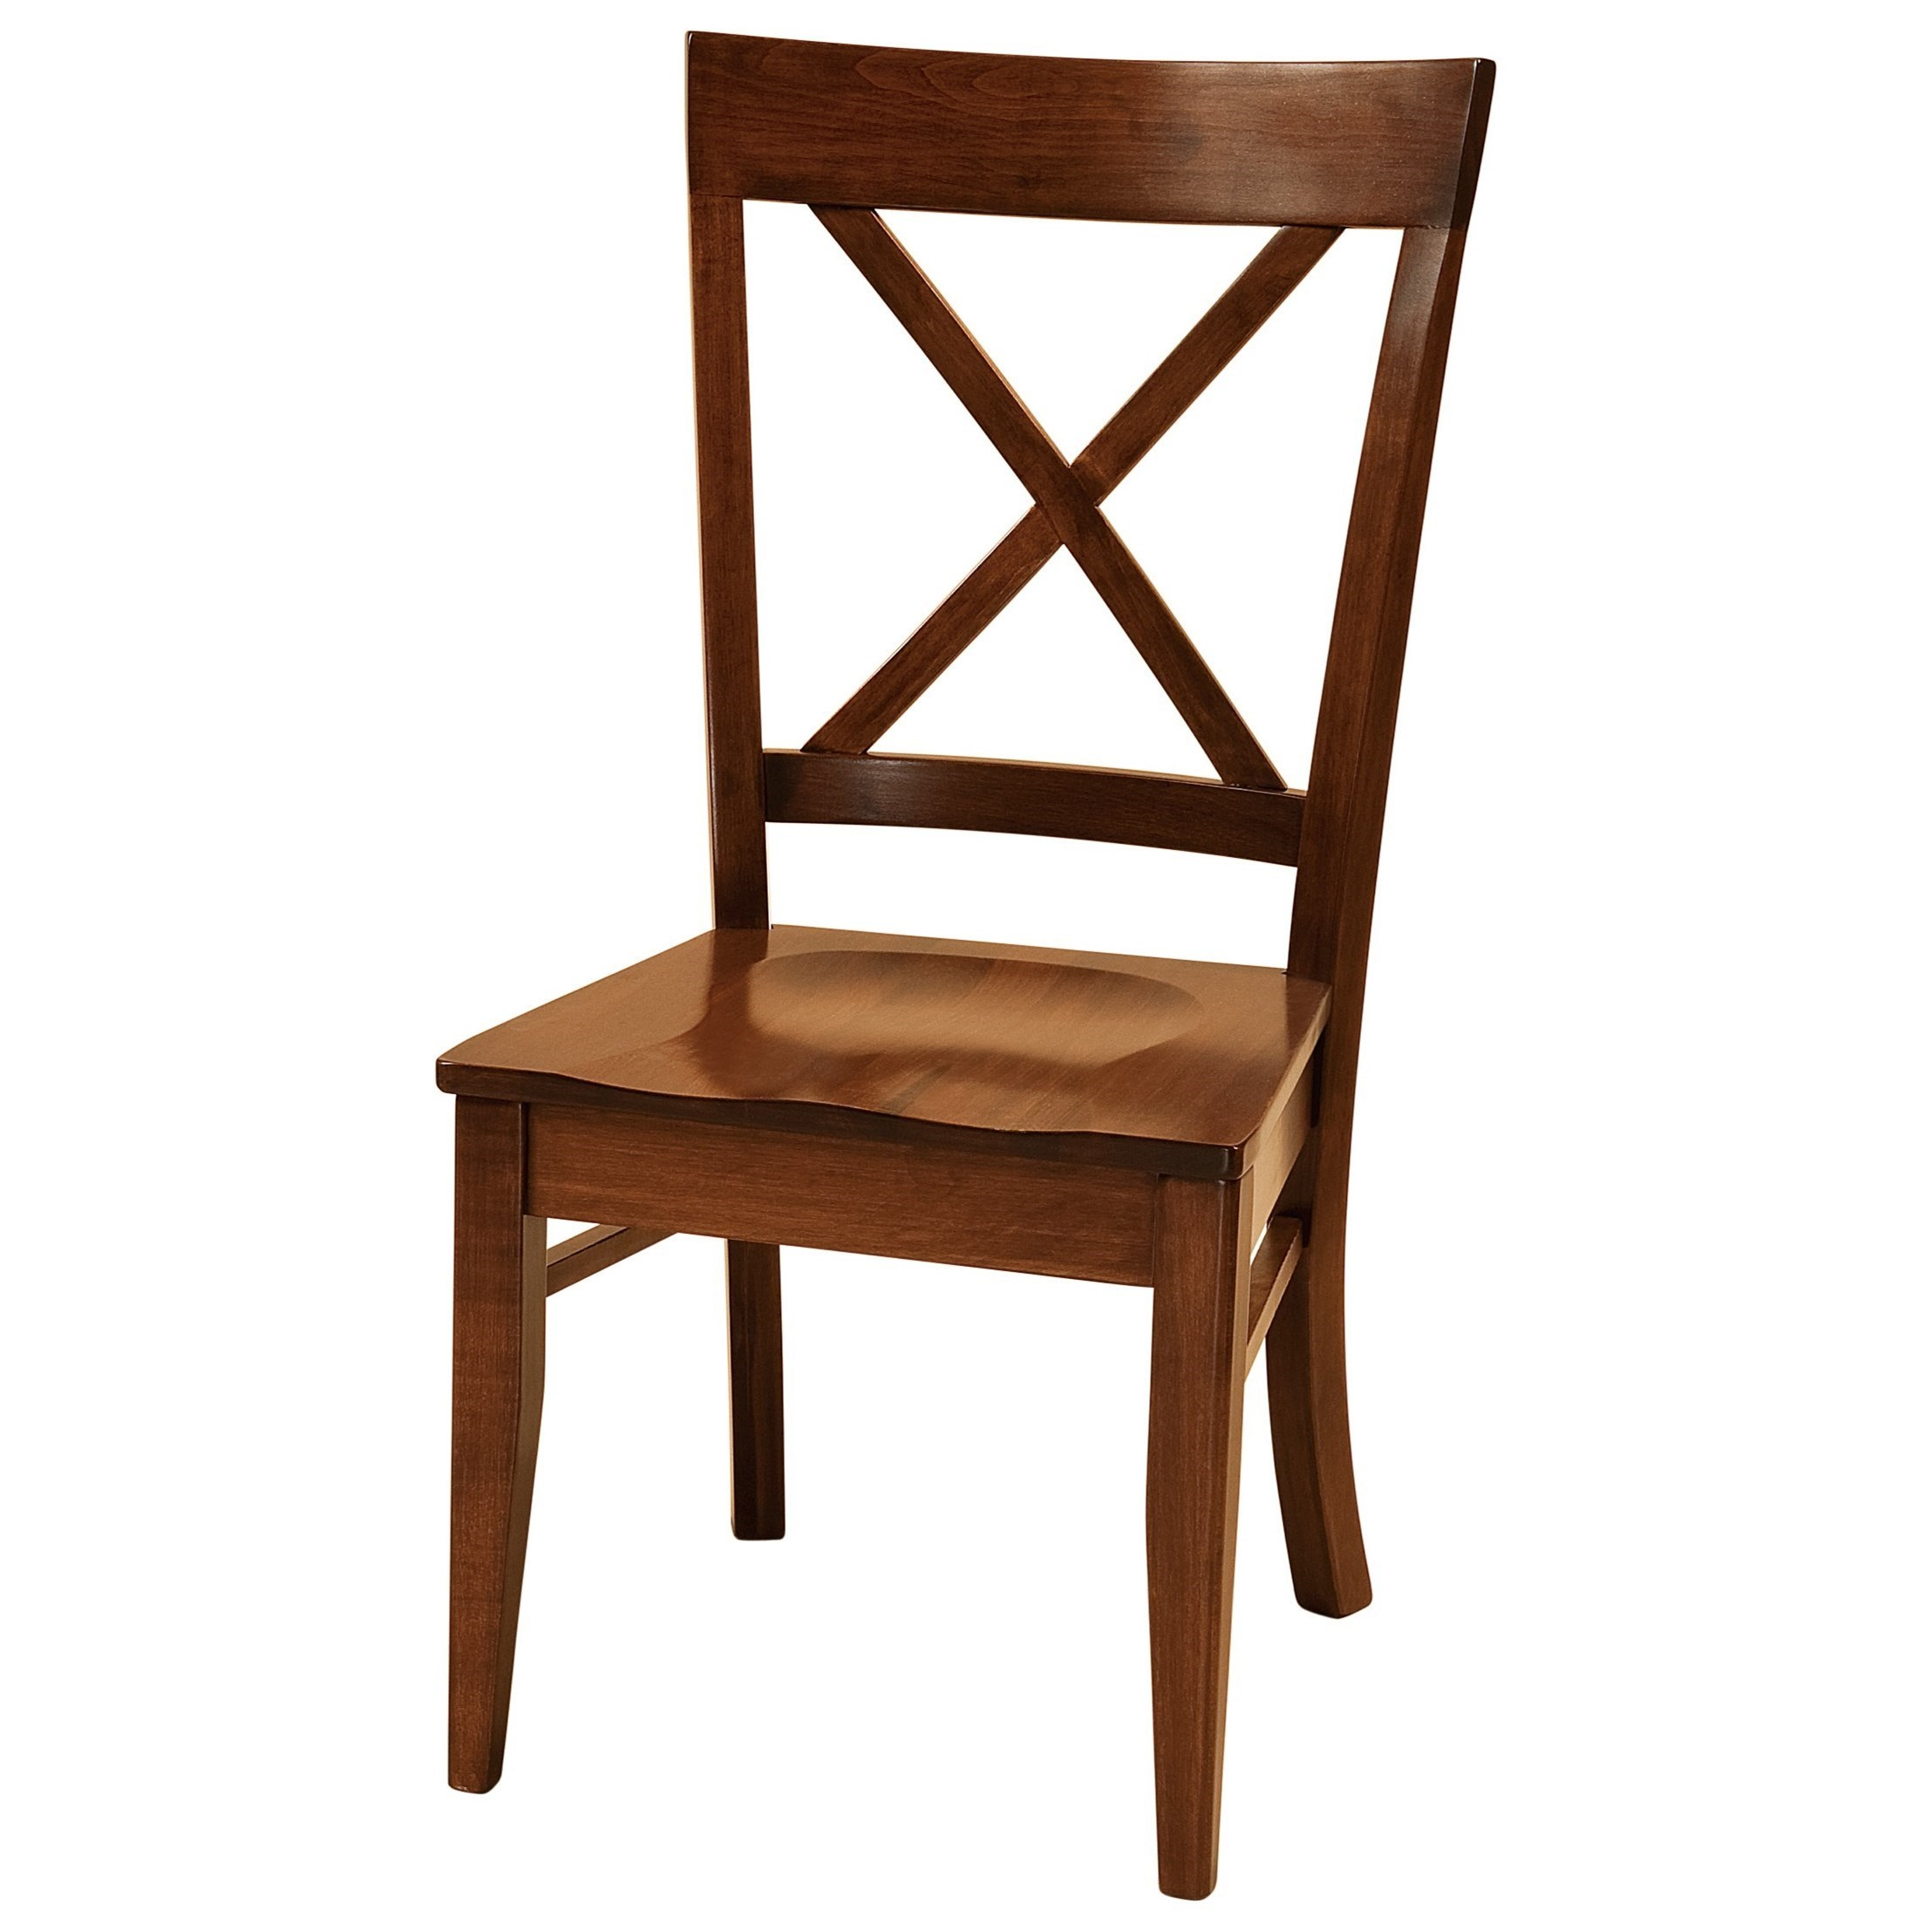 Frontier Side Chair - Fabric Seat by F&N Woodworking at Mueller Furniture